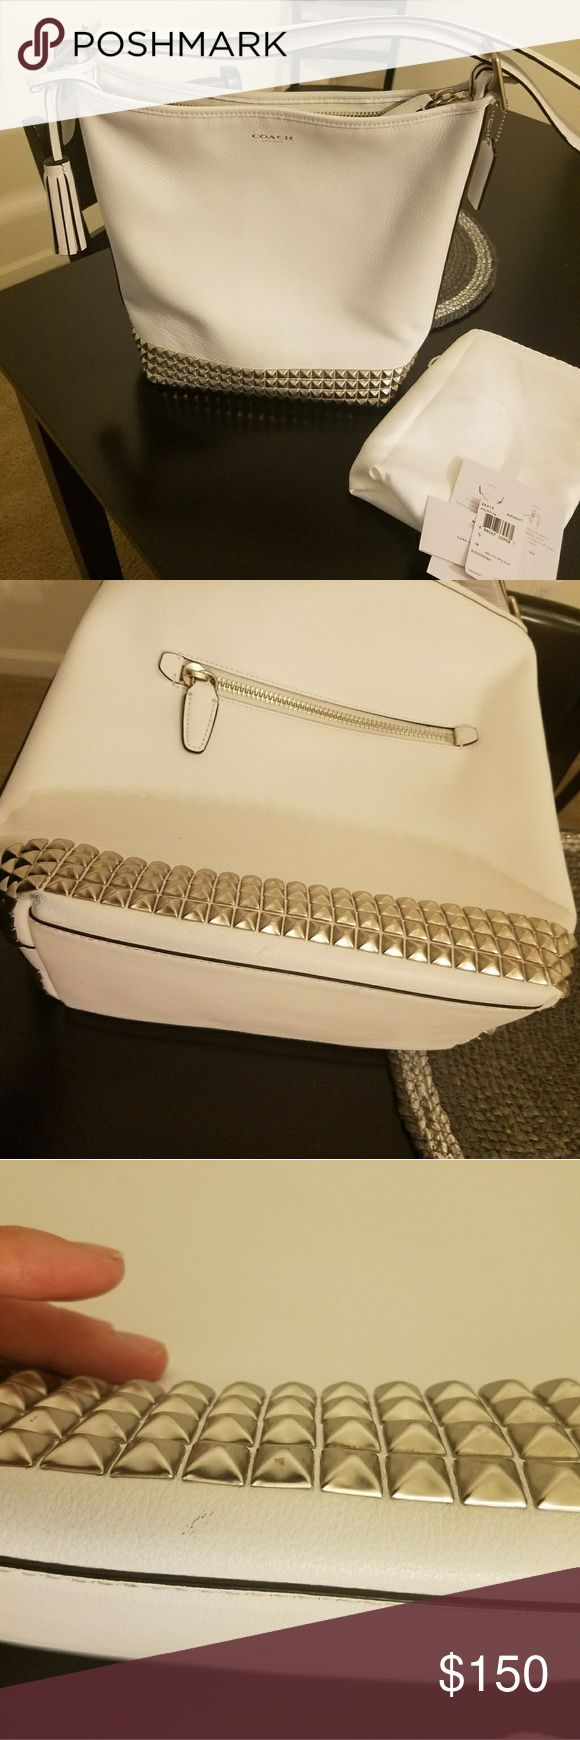 Coach Legacy White Stud Duffle White Coach legacy duffle with silver studs, all intact. Used once. See pics for minor damage on back corner of bag. Minor spots also to back of the bag also, see photos. Dust bag, original tag, care card included. beautiful bag, solid - I cannot do white. No pay pal and no trades, thanks for looking. Ask any question you have before making a reasonable offer. Coach Bags